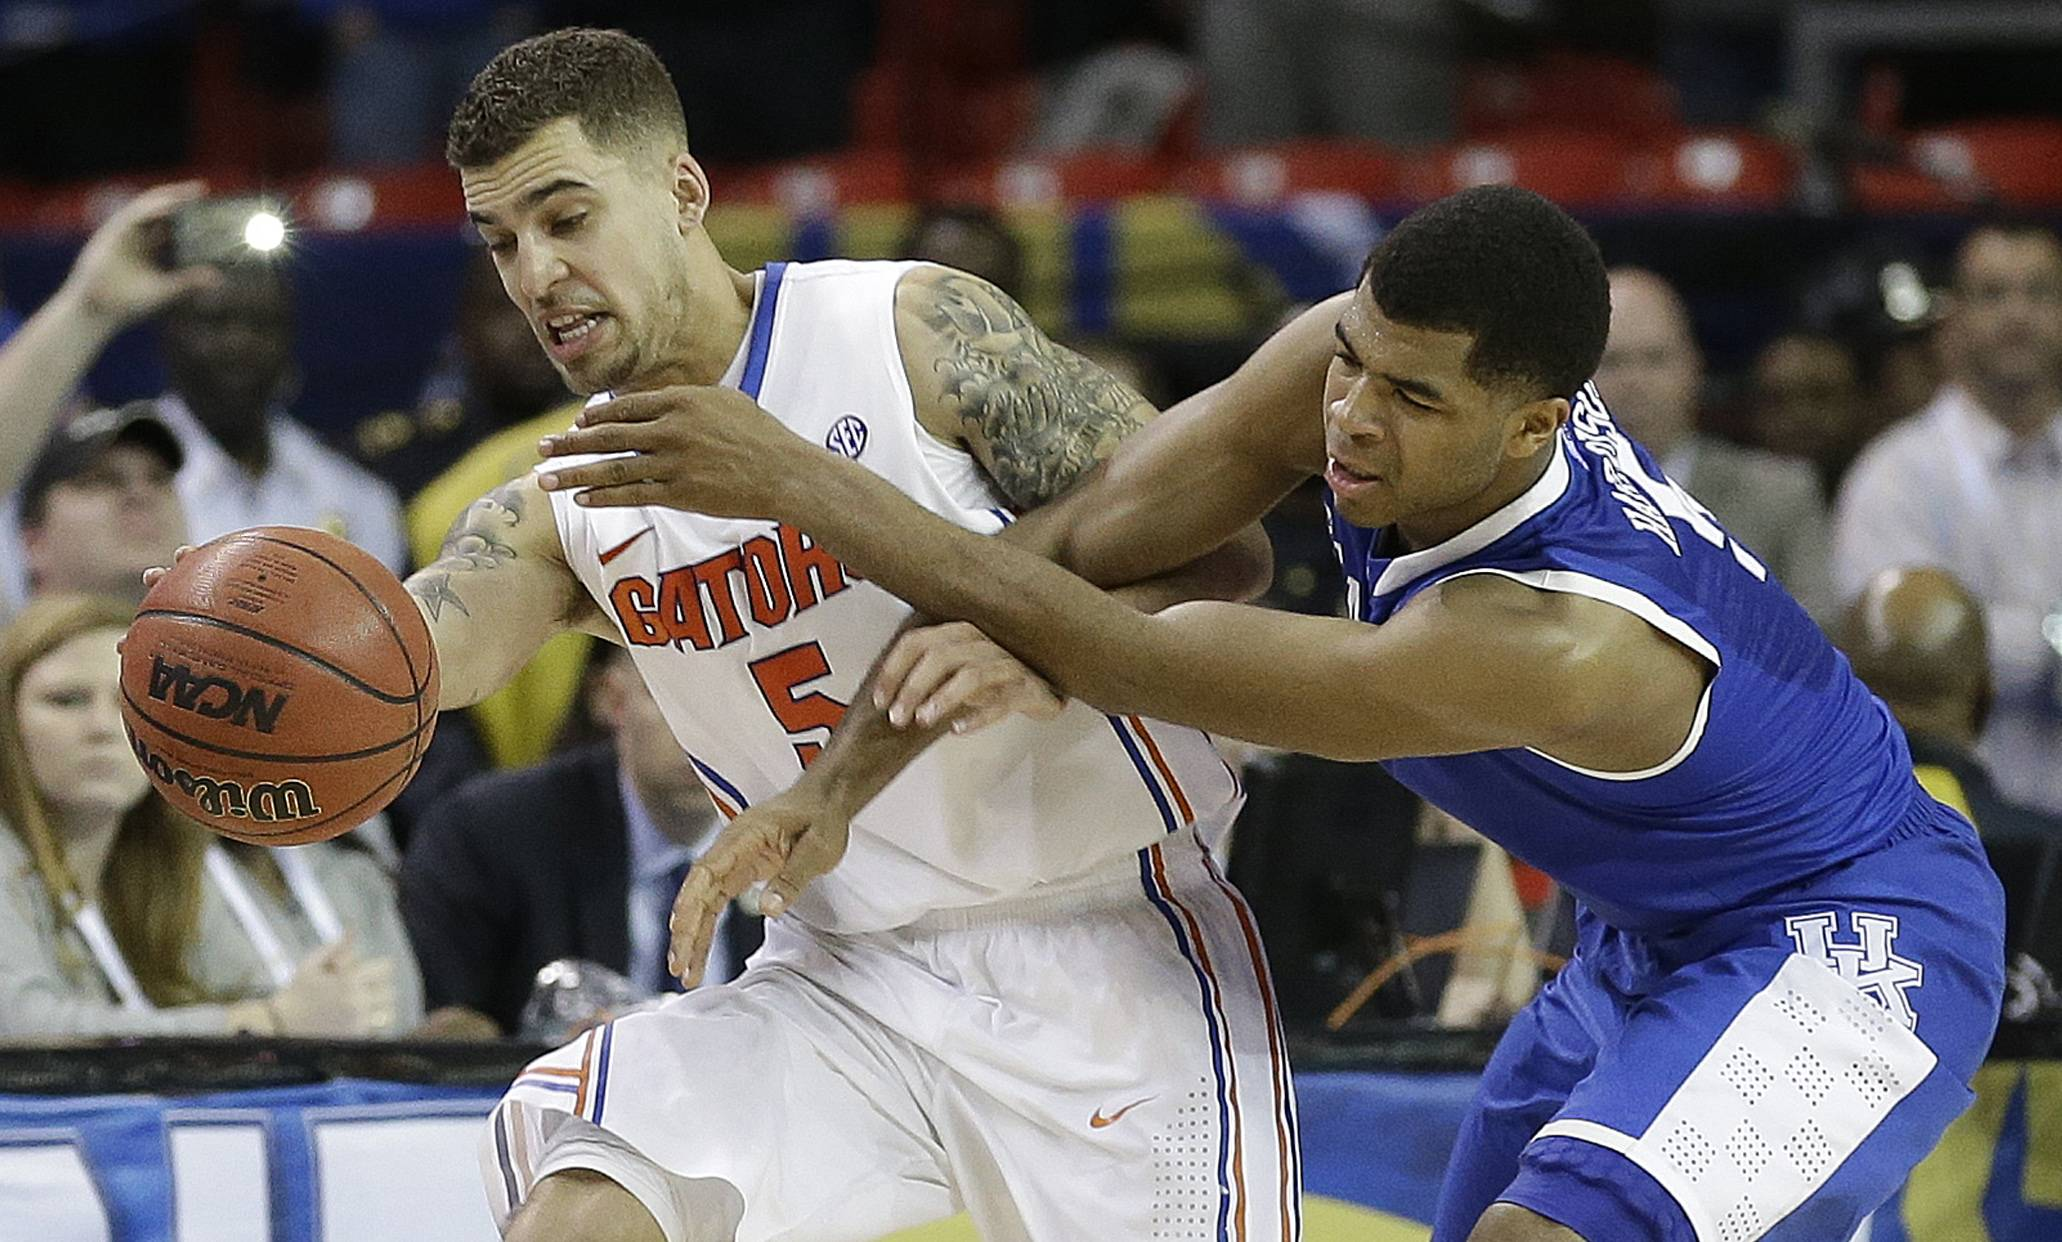 Kentucky guard Andrew Harrison (5) and Florida guard Scottie Wilbekin (5) work for a loose ball during the second half of an NCAA college basketball game in the Championship round of the Southeastern Conference men's tournament, Sunday, March 16, 2014, in Atlanta. Florida won 61-60.